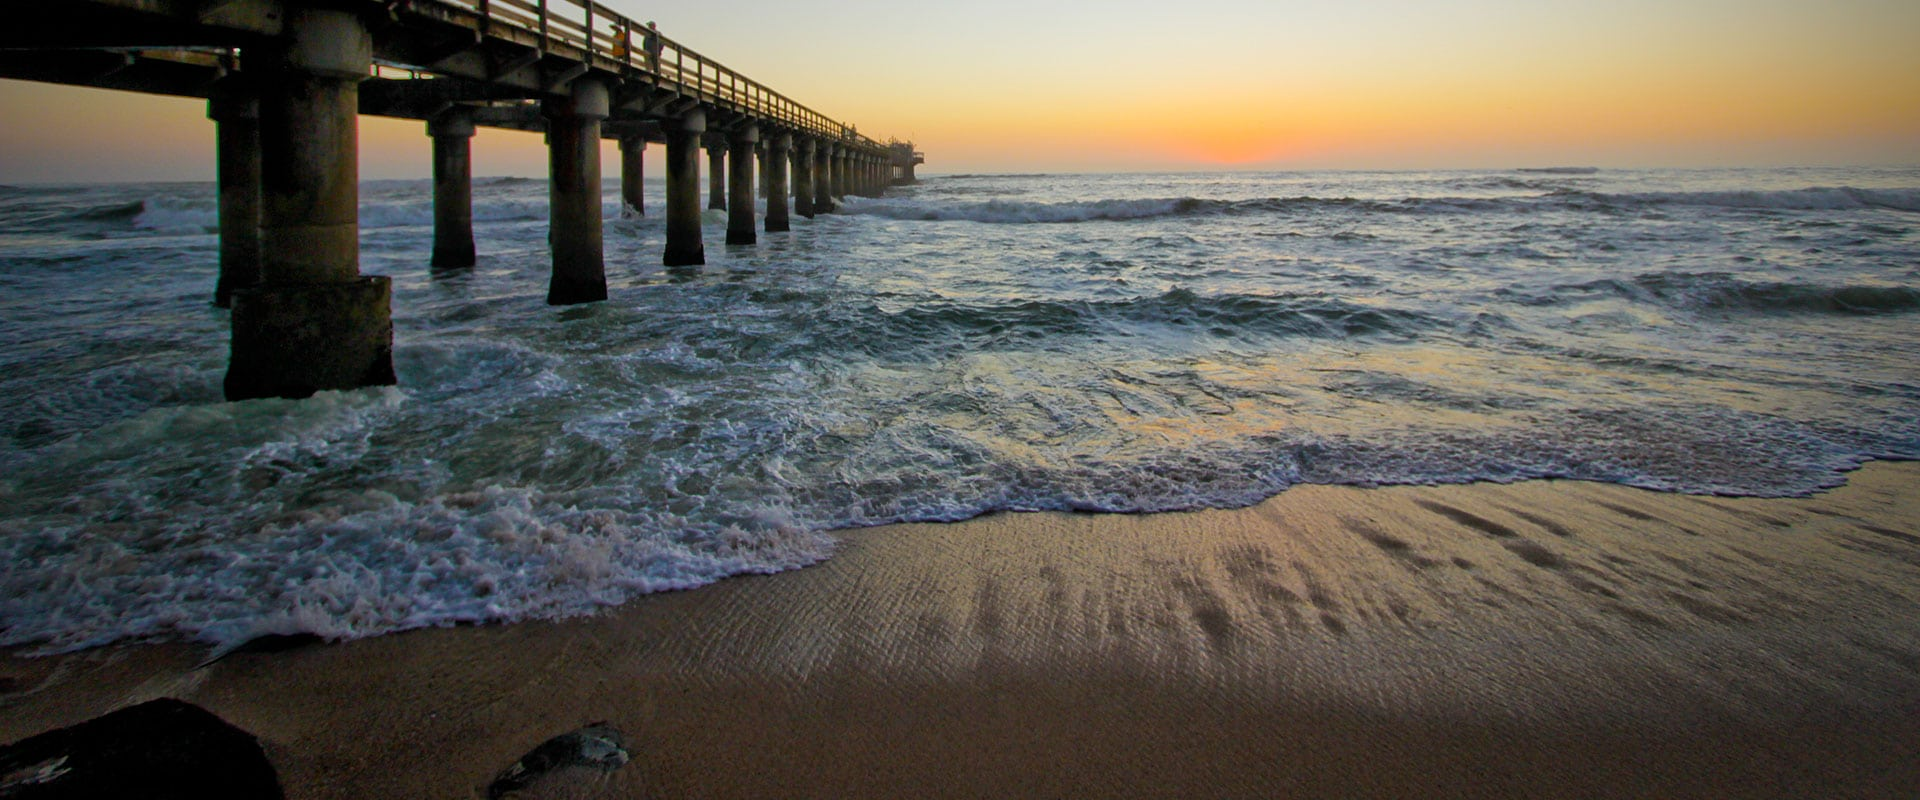 Sip sundowners on the historical jetty